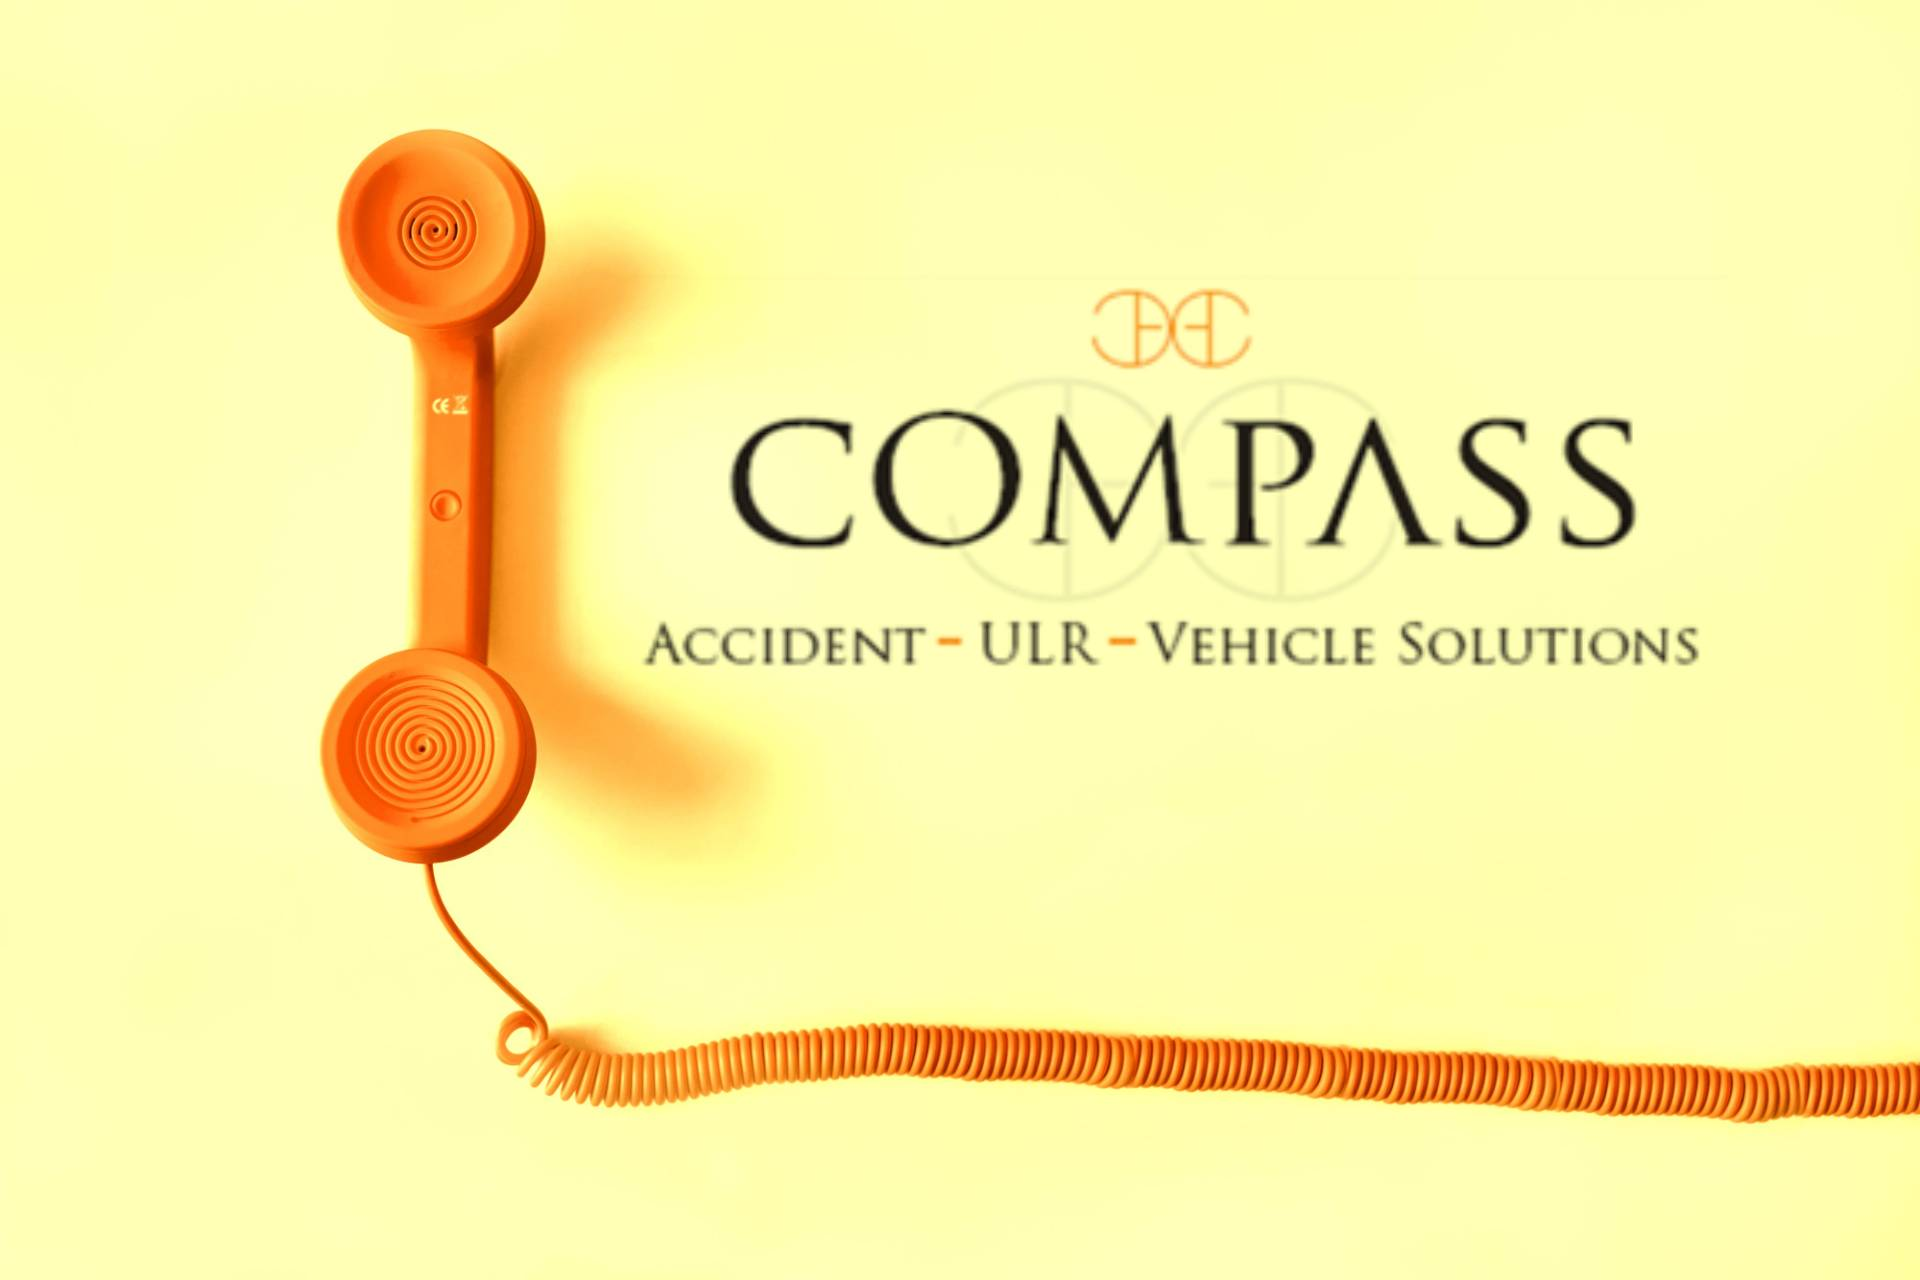 non fault car accident help information